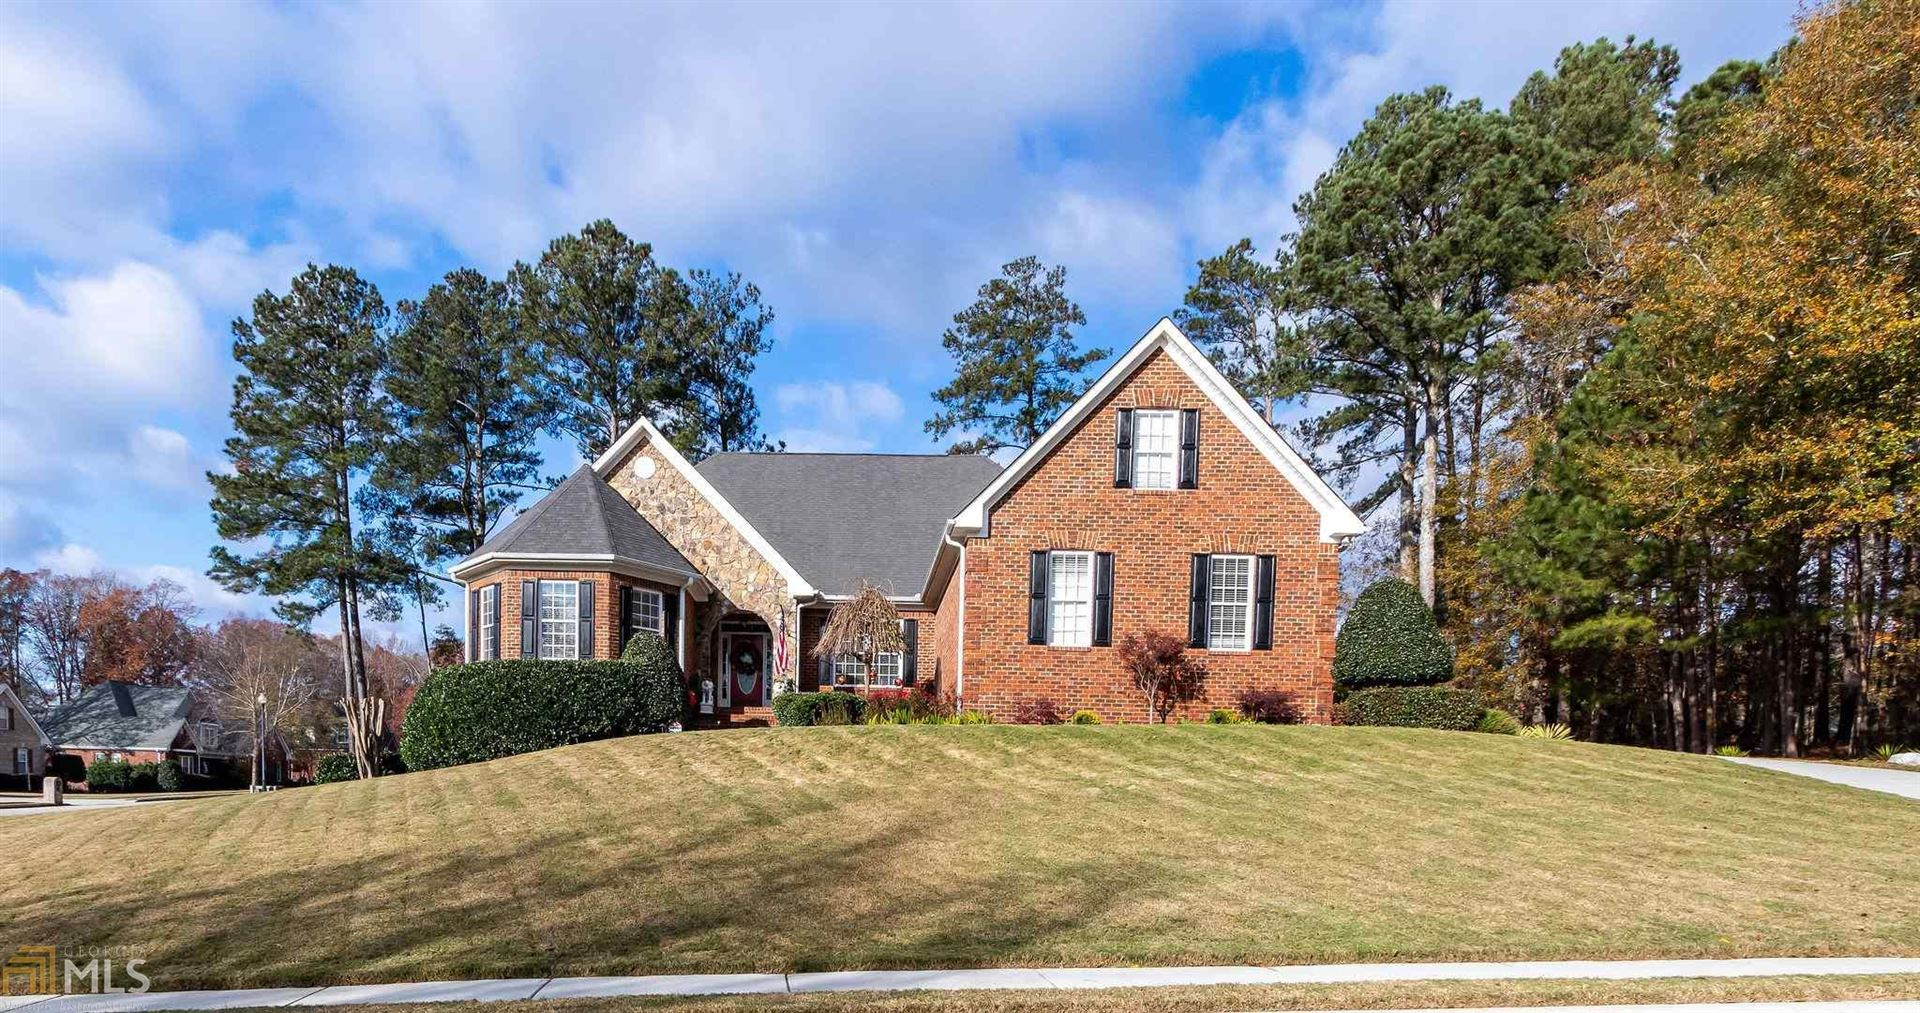 601 Ashtonberry Pt, Loganville, GA 30052 - MLS#: 8892951